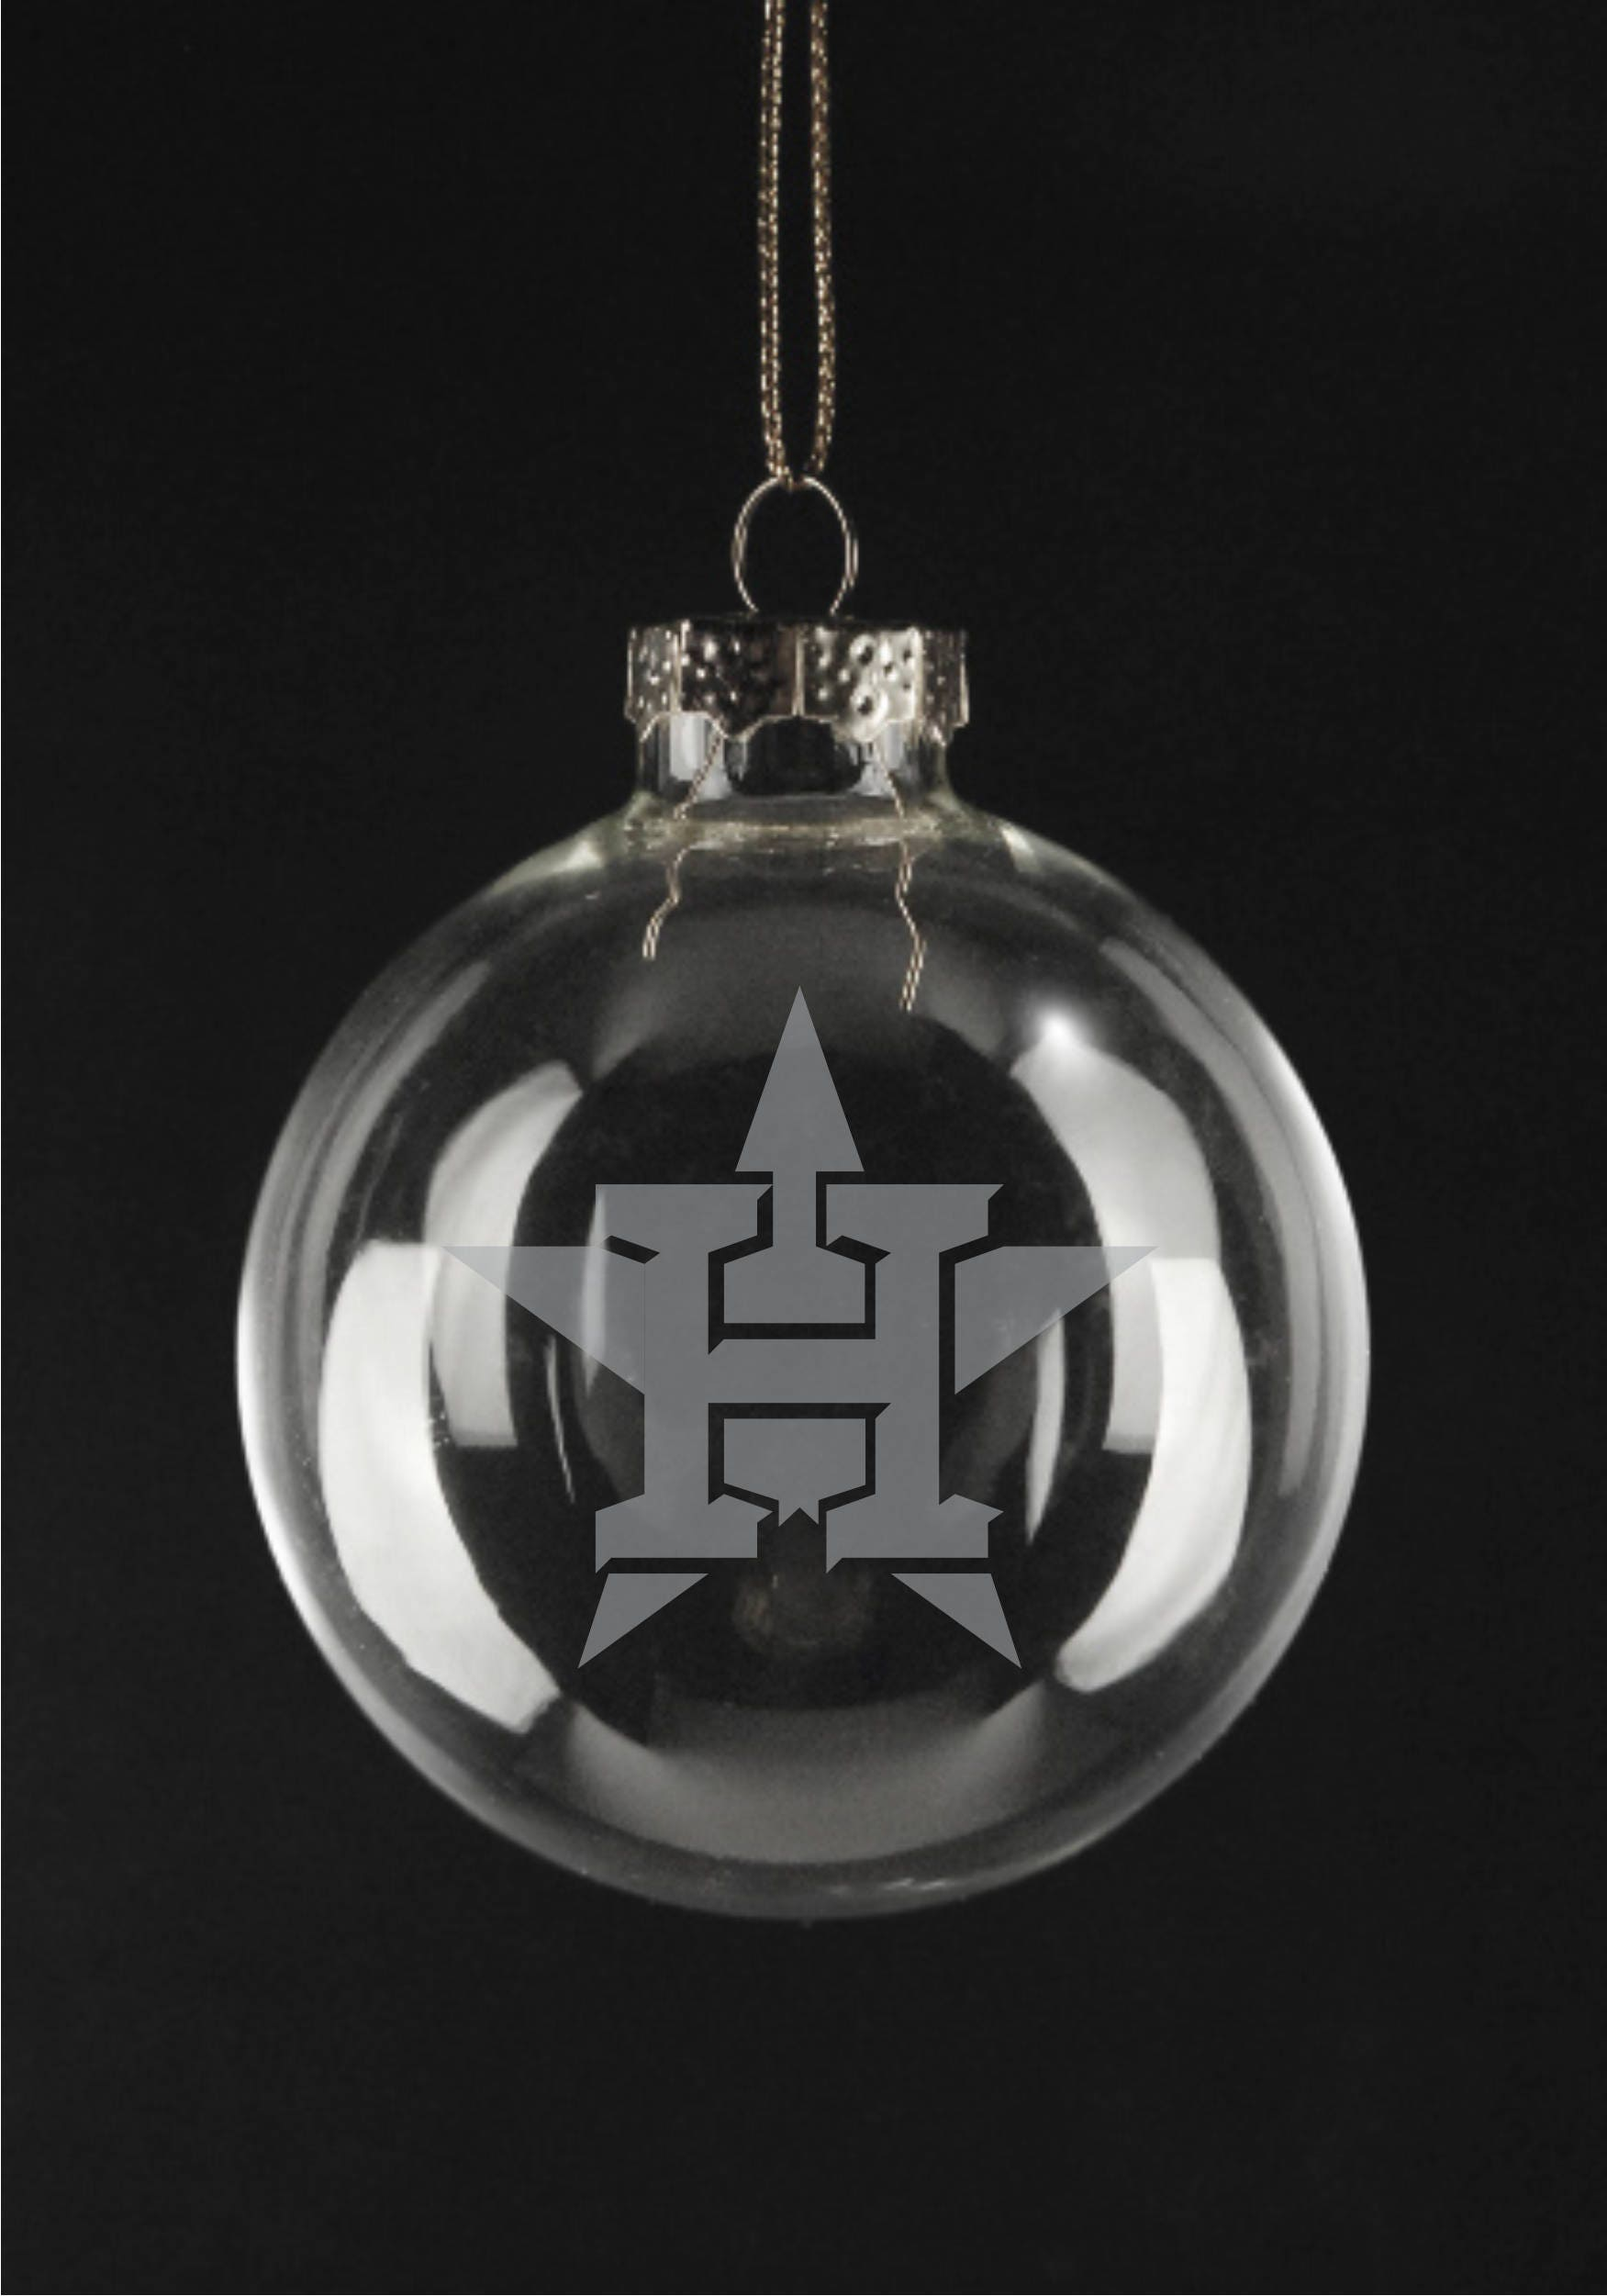 houston astros glass ornament 3125 disc etched xmas special gifts